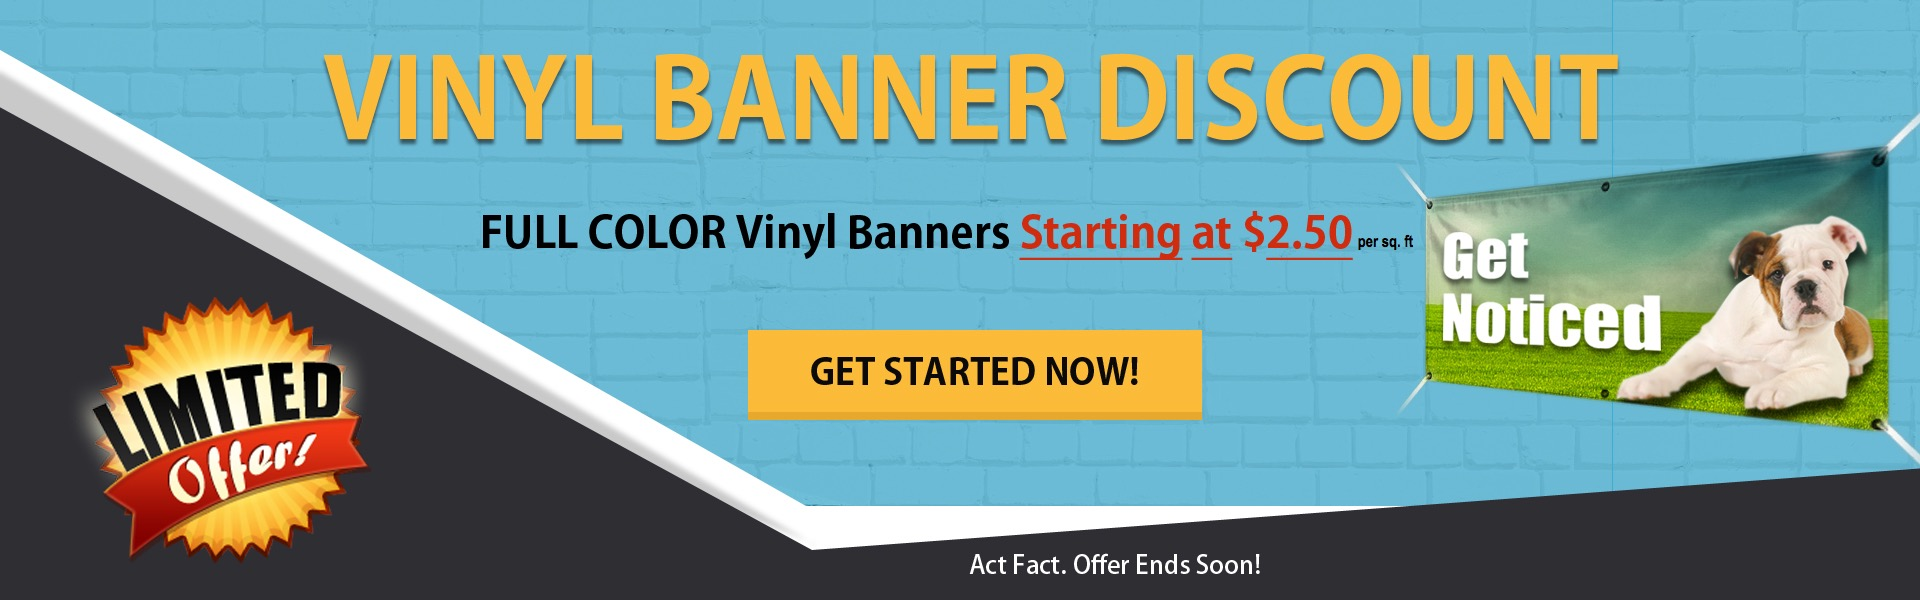 vinyl-banners-discount-specials-page